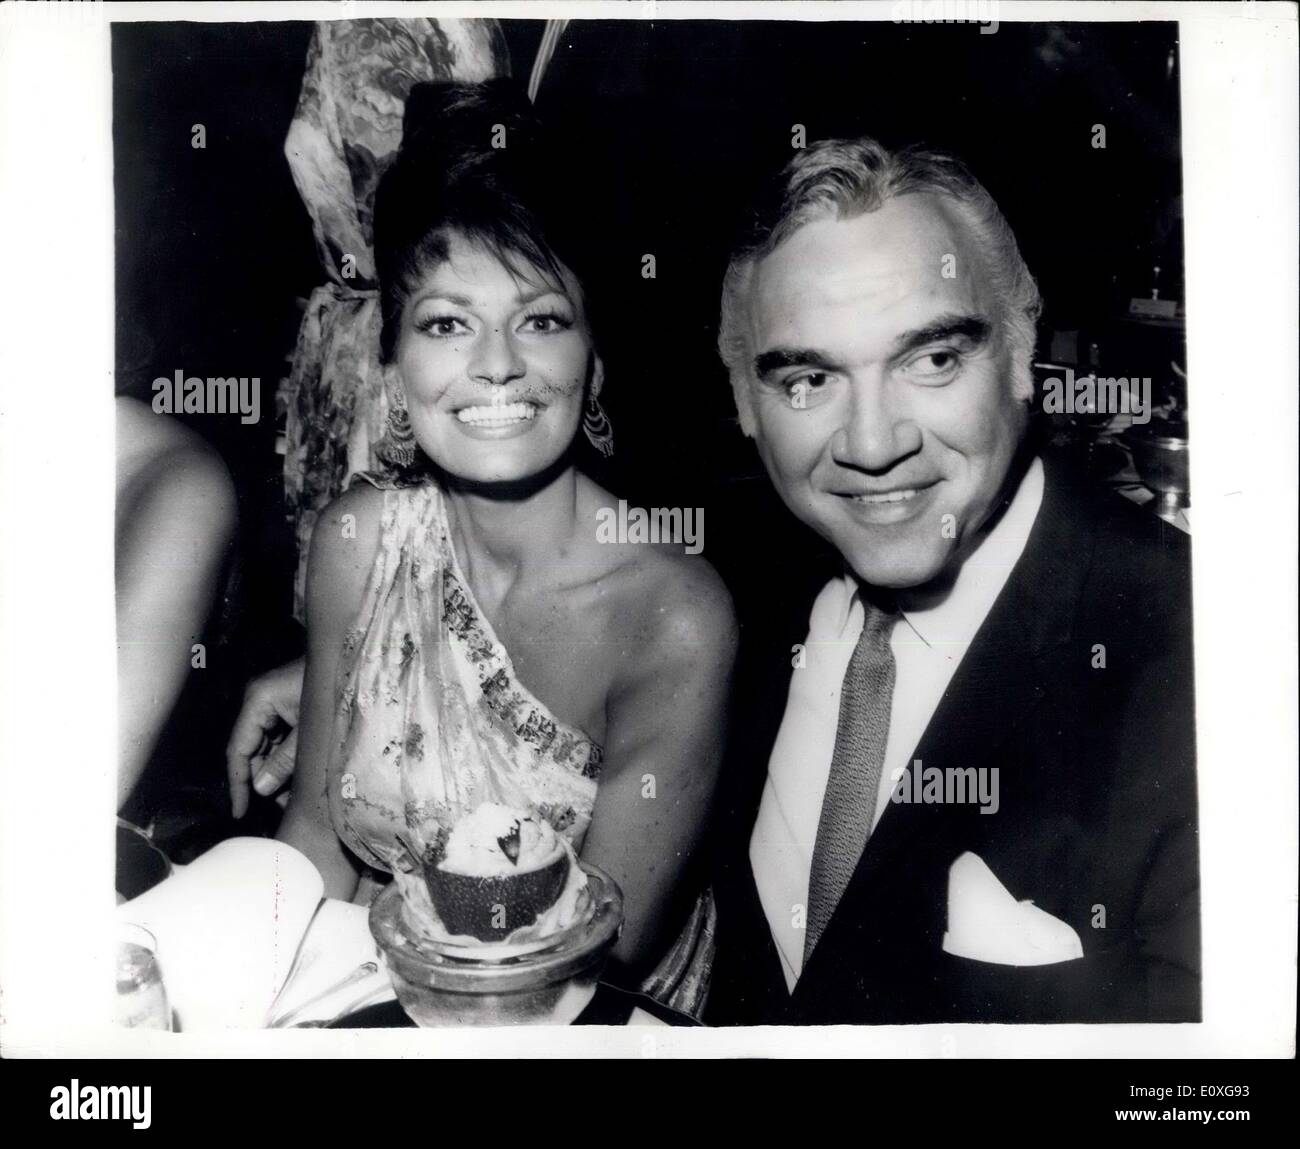 Nov. 13, 1966 - ''Bonanza'' Star and his wife Dine out: Lorne Greene popular star of the T.V.Bonanza series and his wife Nancy seen as they dined out at the famous Hollywood Supper Club the Cocoanut Grove. Greene, a former newscaster at a Canadian Station before turning actor has become one of the wealthiest actors in Hollywood by reason of his TV series which is shown in over 25 countries. - Stock Image